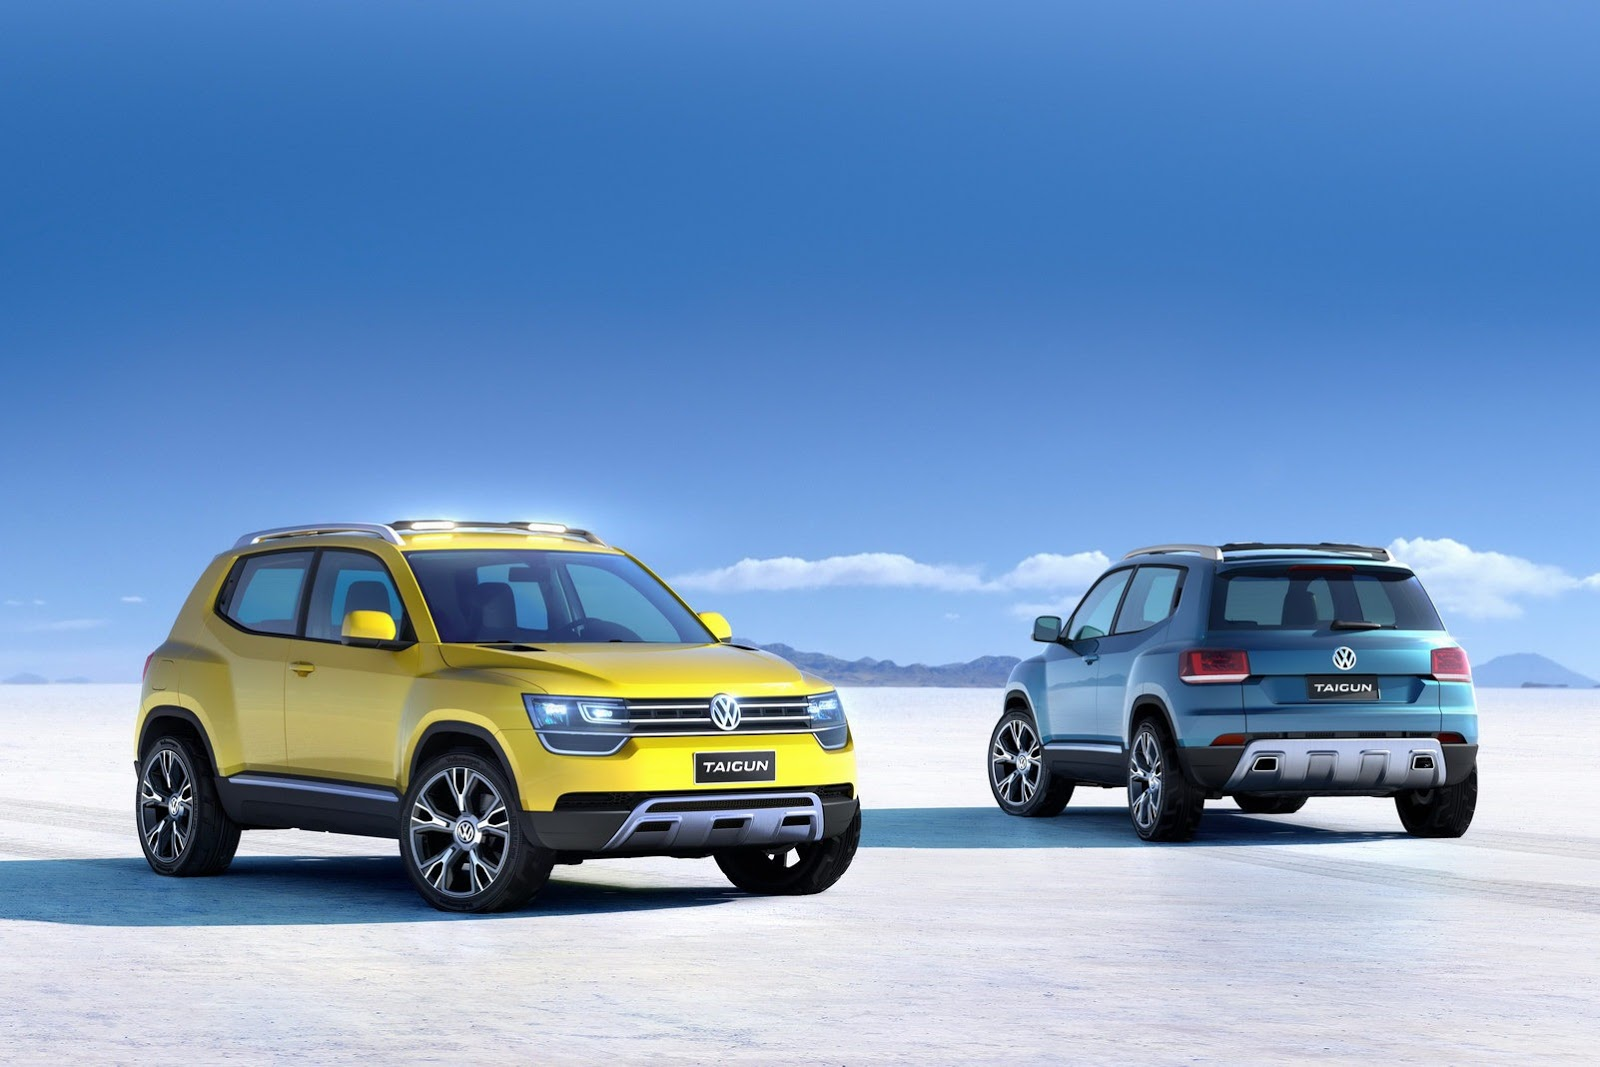 new car launches europe 2015Small SUVs to put pressure on European counterparts  Travel Blog